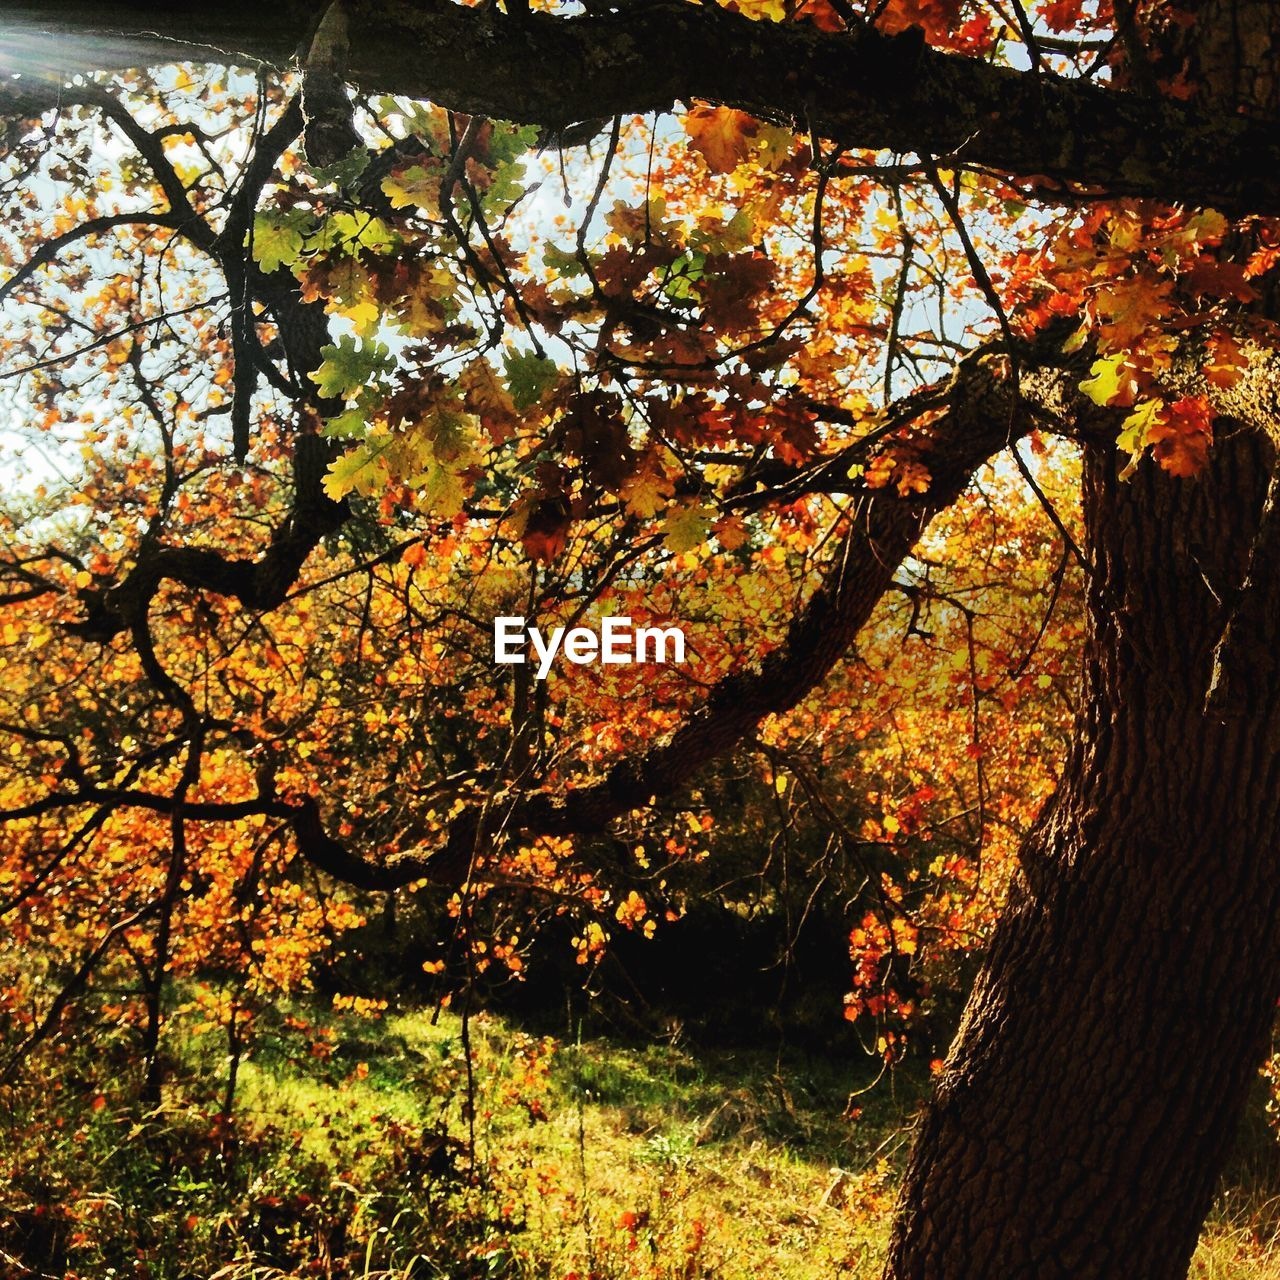 tree, branch, autumn, growth, nature, beauty in nature, no people, tree trunk, outdoors, change, leaf, day, tranquility, scenics, tranquil scene, maple tree, low angle view, close-up, fragility, maple, freshness